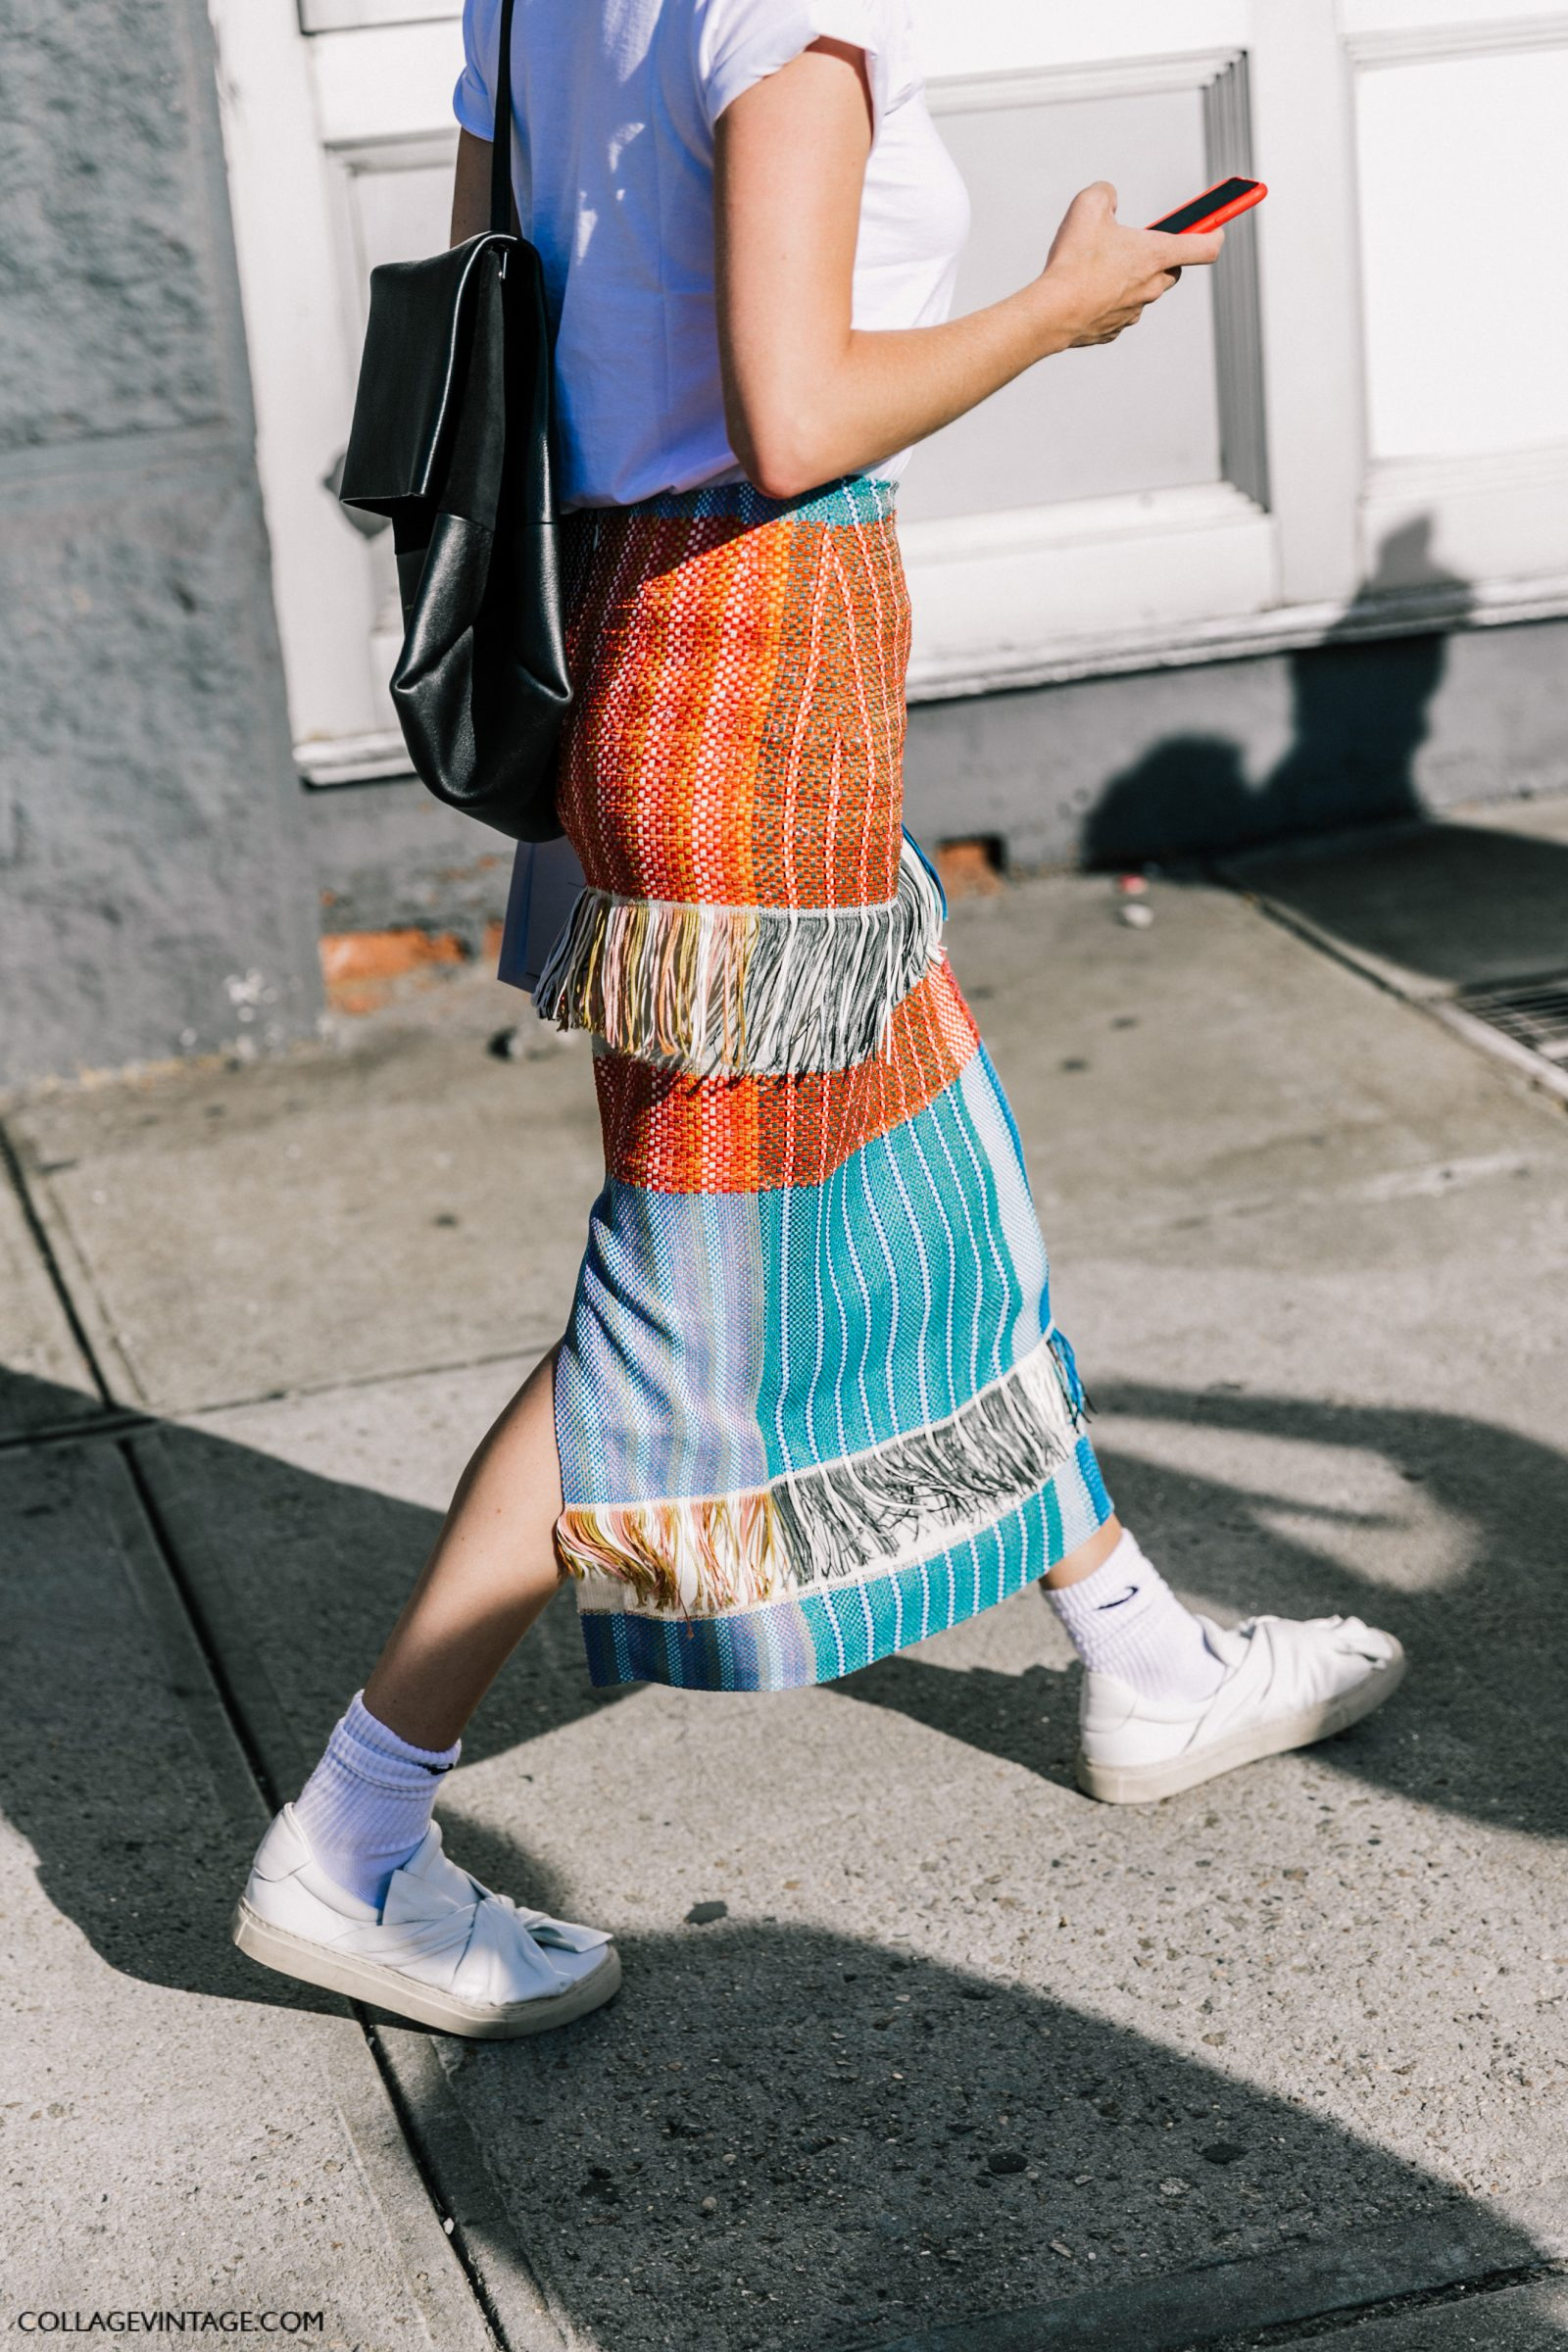 nyfw-new_york_fashion_week_ss17-street_style-outfits-collage_vintage-vintage-atuzarra-51